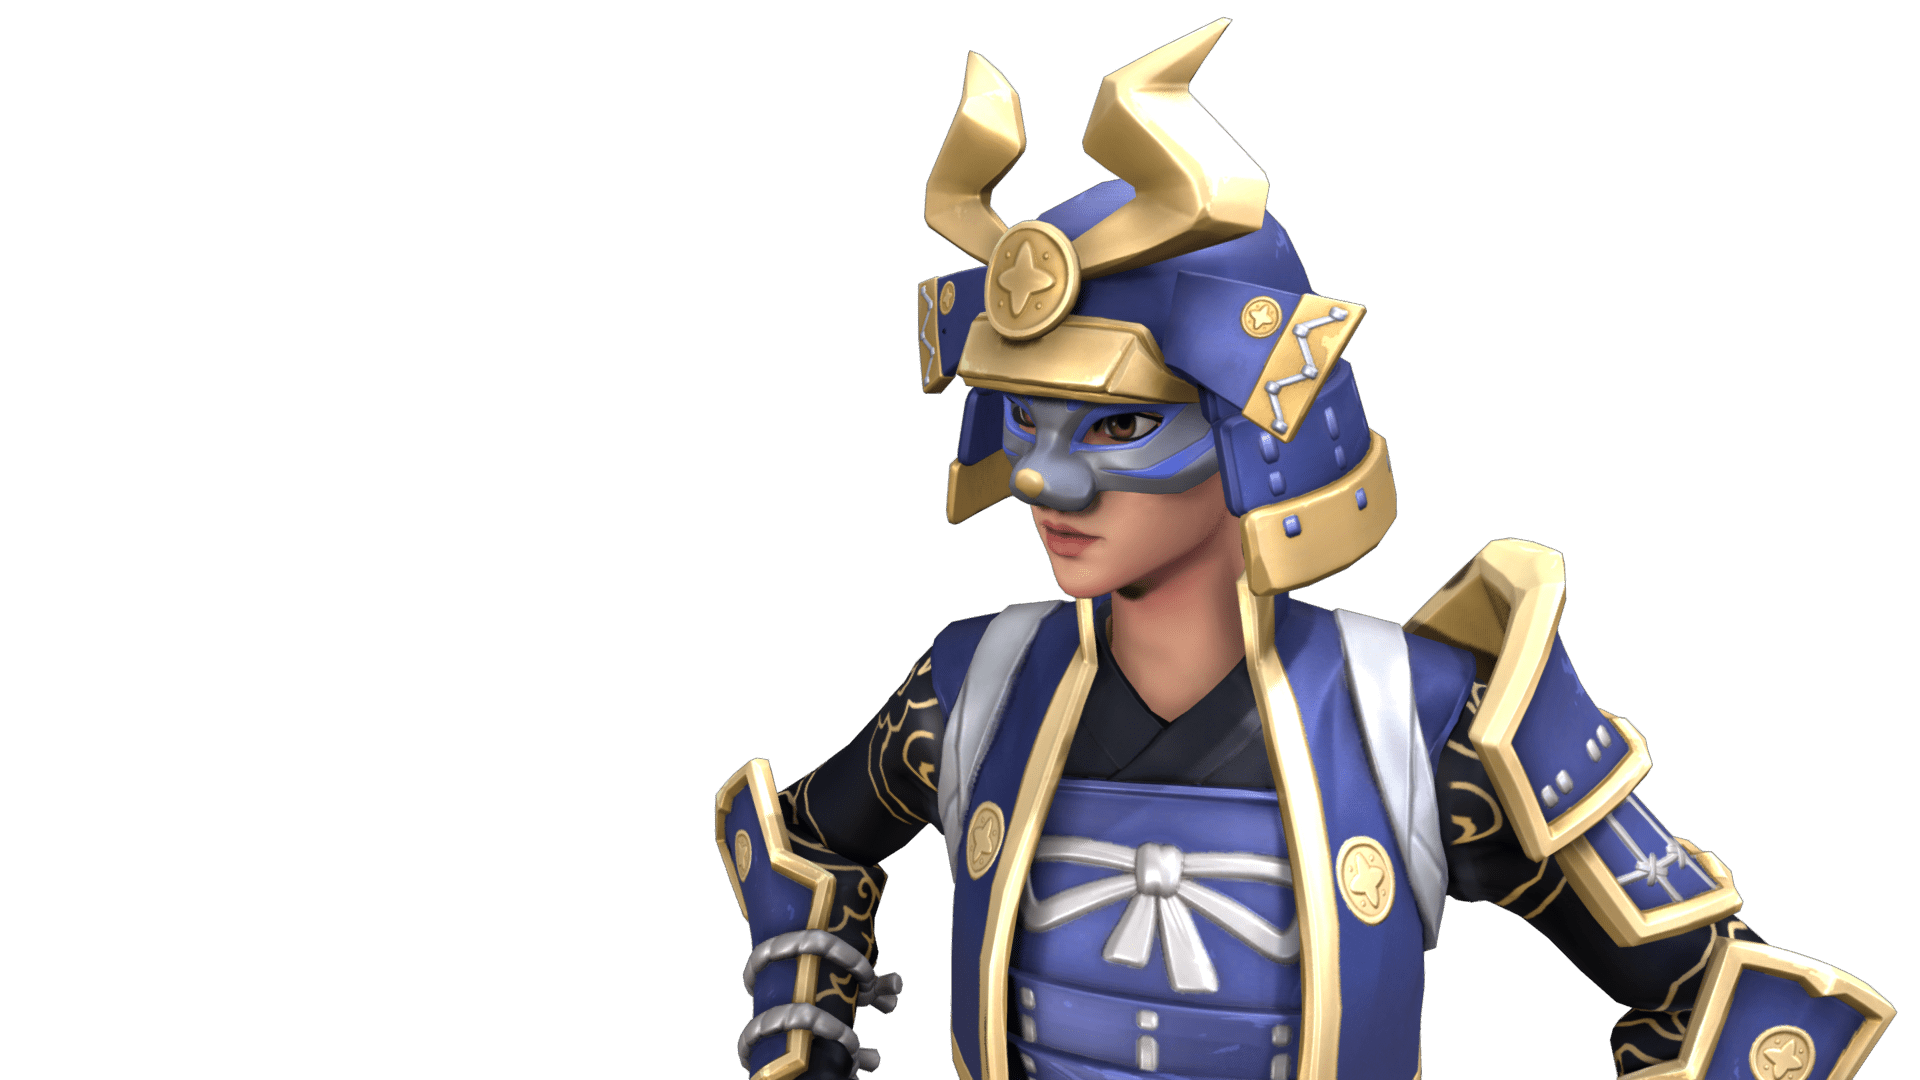 hime fortnite outfit skin how get updates fortnite watch #27085